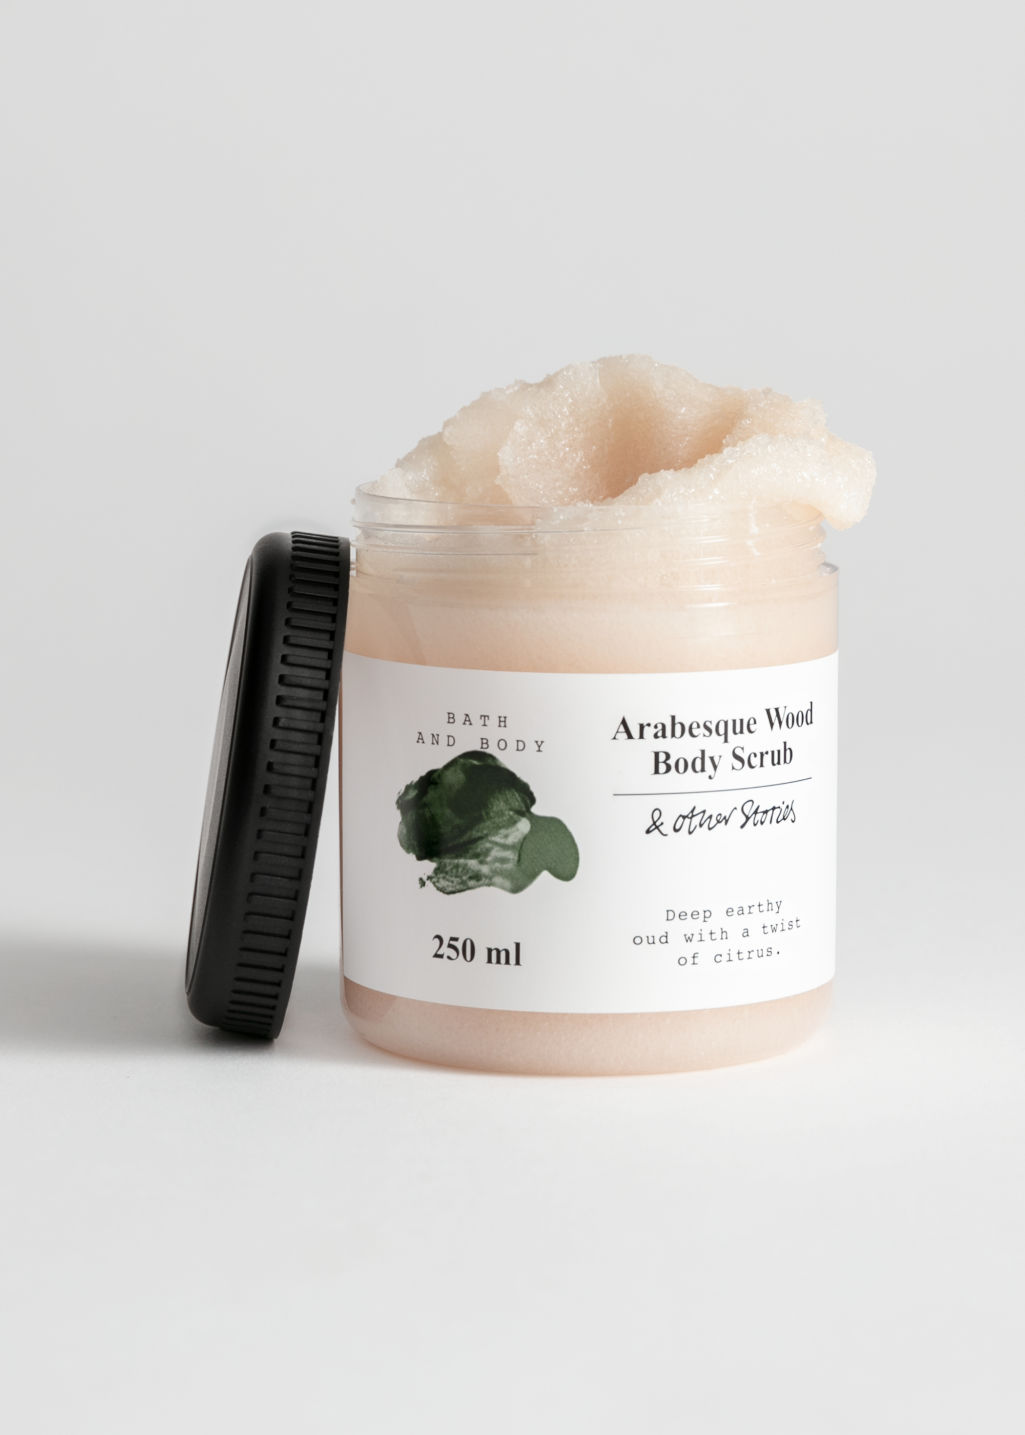 Arabesque Wood Hand Soap - Arabesque Wood - Bath & Body - & Other Stories